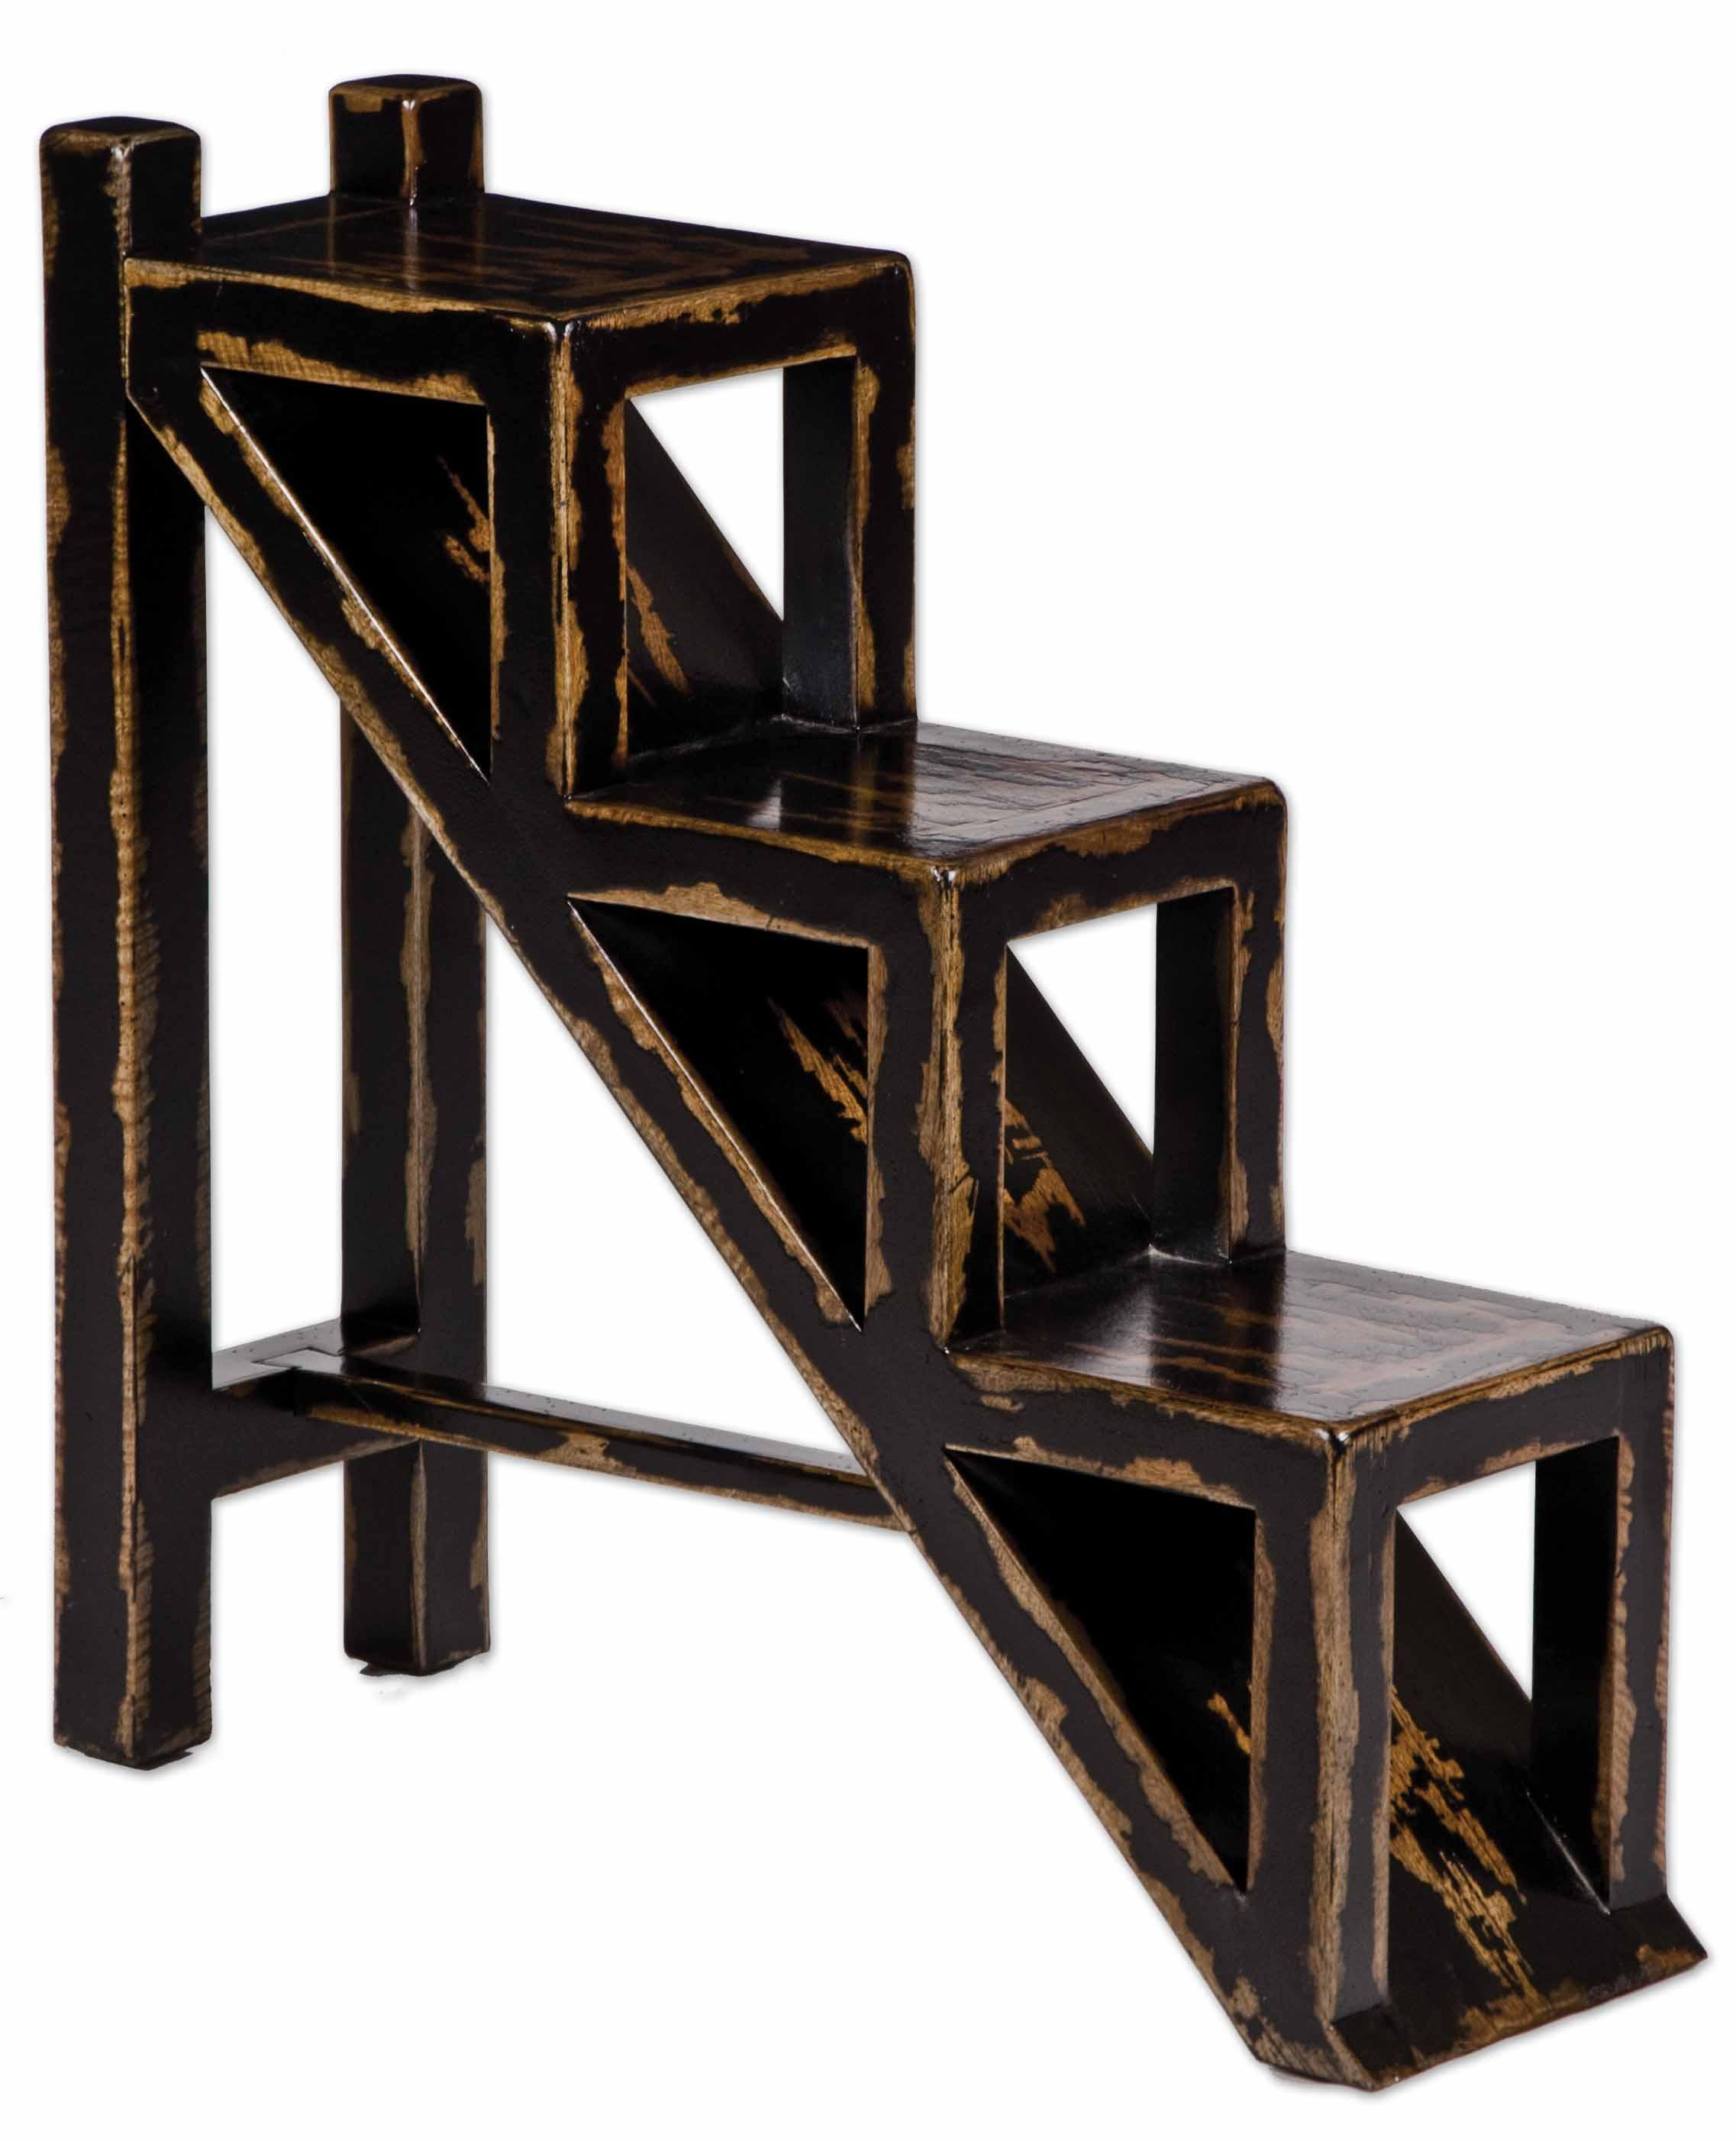 Uttermost Accent Furniture Asher Black Accent Table - Item Number: 25523